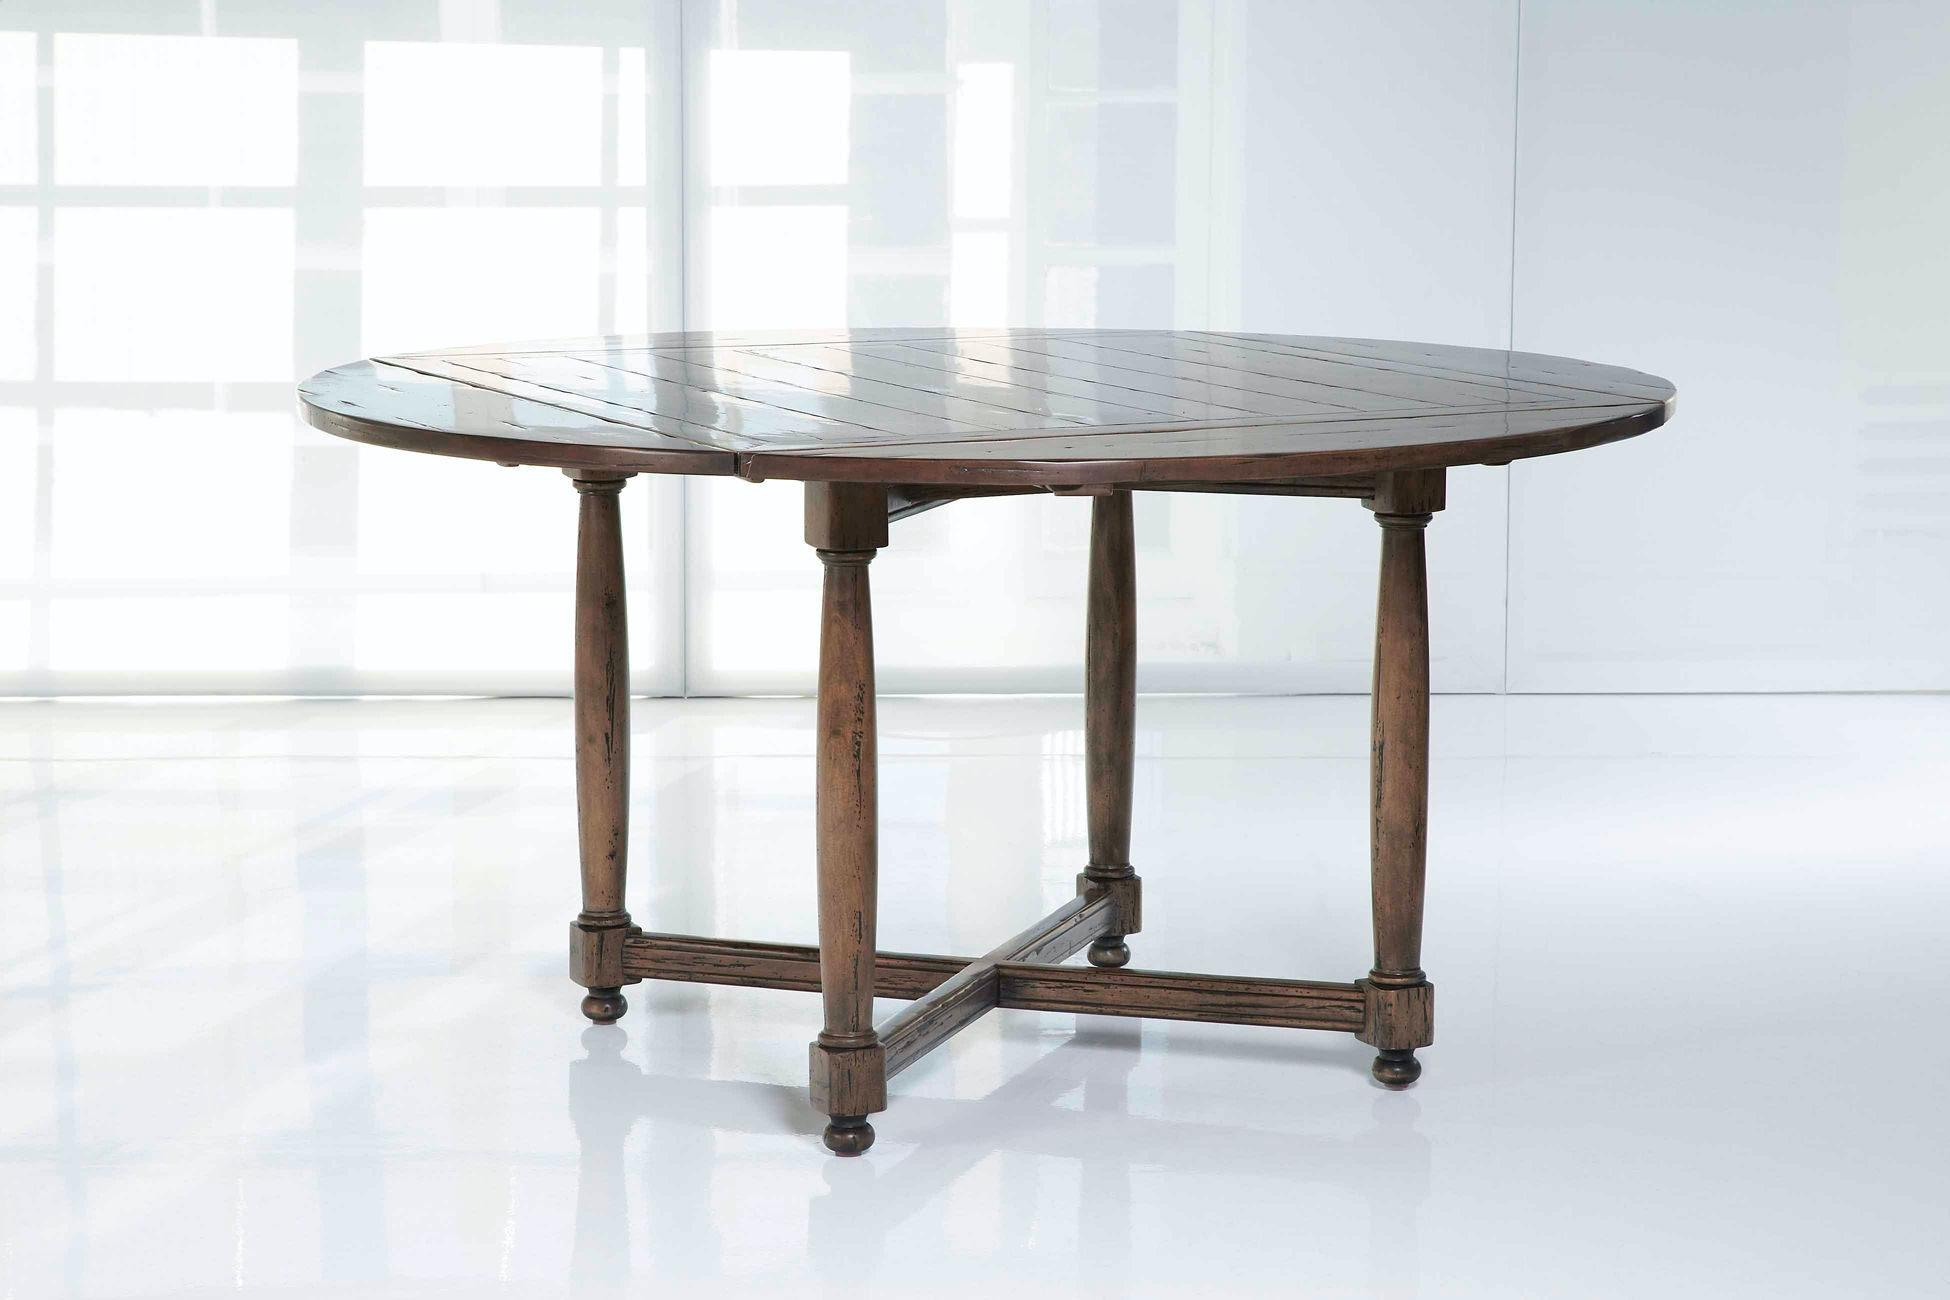 Kravet Turned Square to Round Dining Table WD442SR IP CR  : wd442sr from search.kravet.com size 768 x 576 jpeg 24kB